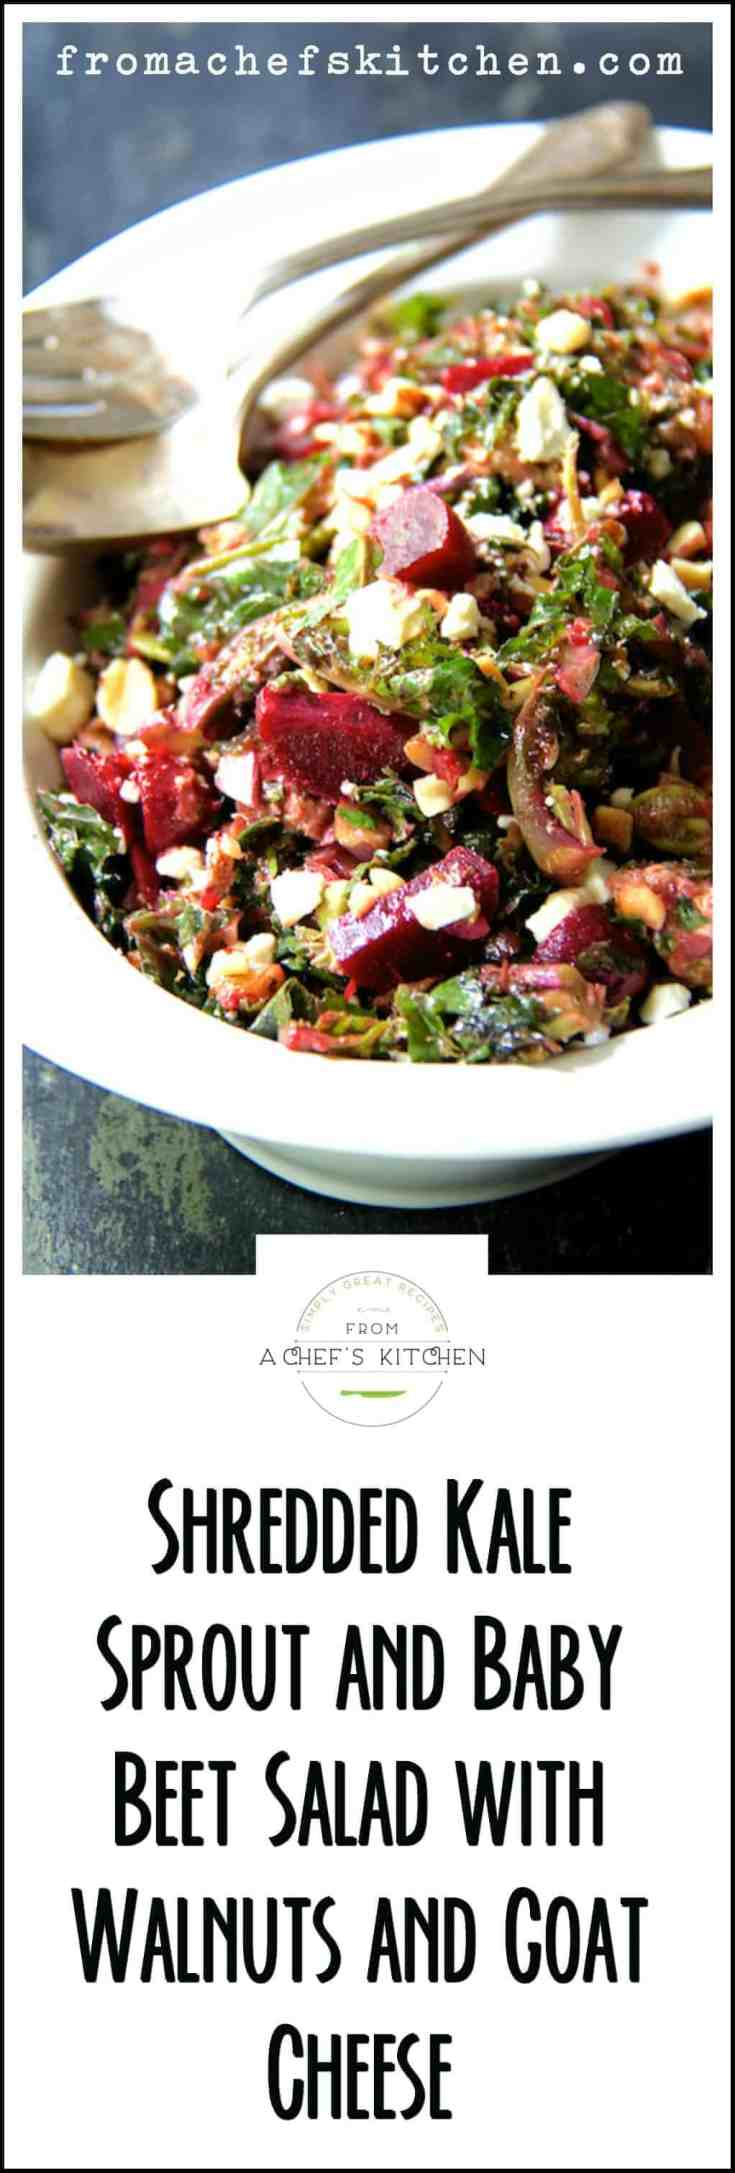 Shredded Kale Sprout and Baby Beet Salad with Walnuts and Goat Cheese is an easy, elegant salad that's perfect as part of a casual lunch or elegant dinner. A homemade balsamic vinaigrette pulls it all together for flavors that rock! #kale #kalesalad #salad #beet #beetsalad #goatcheese #walnuts